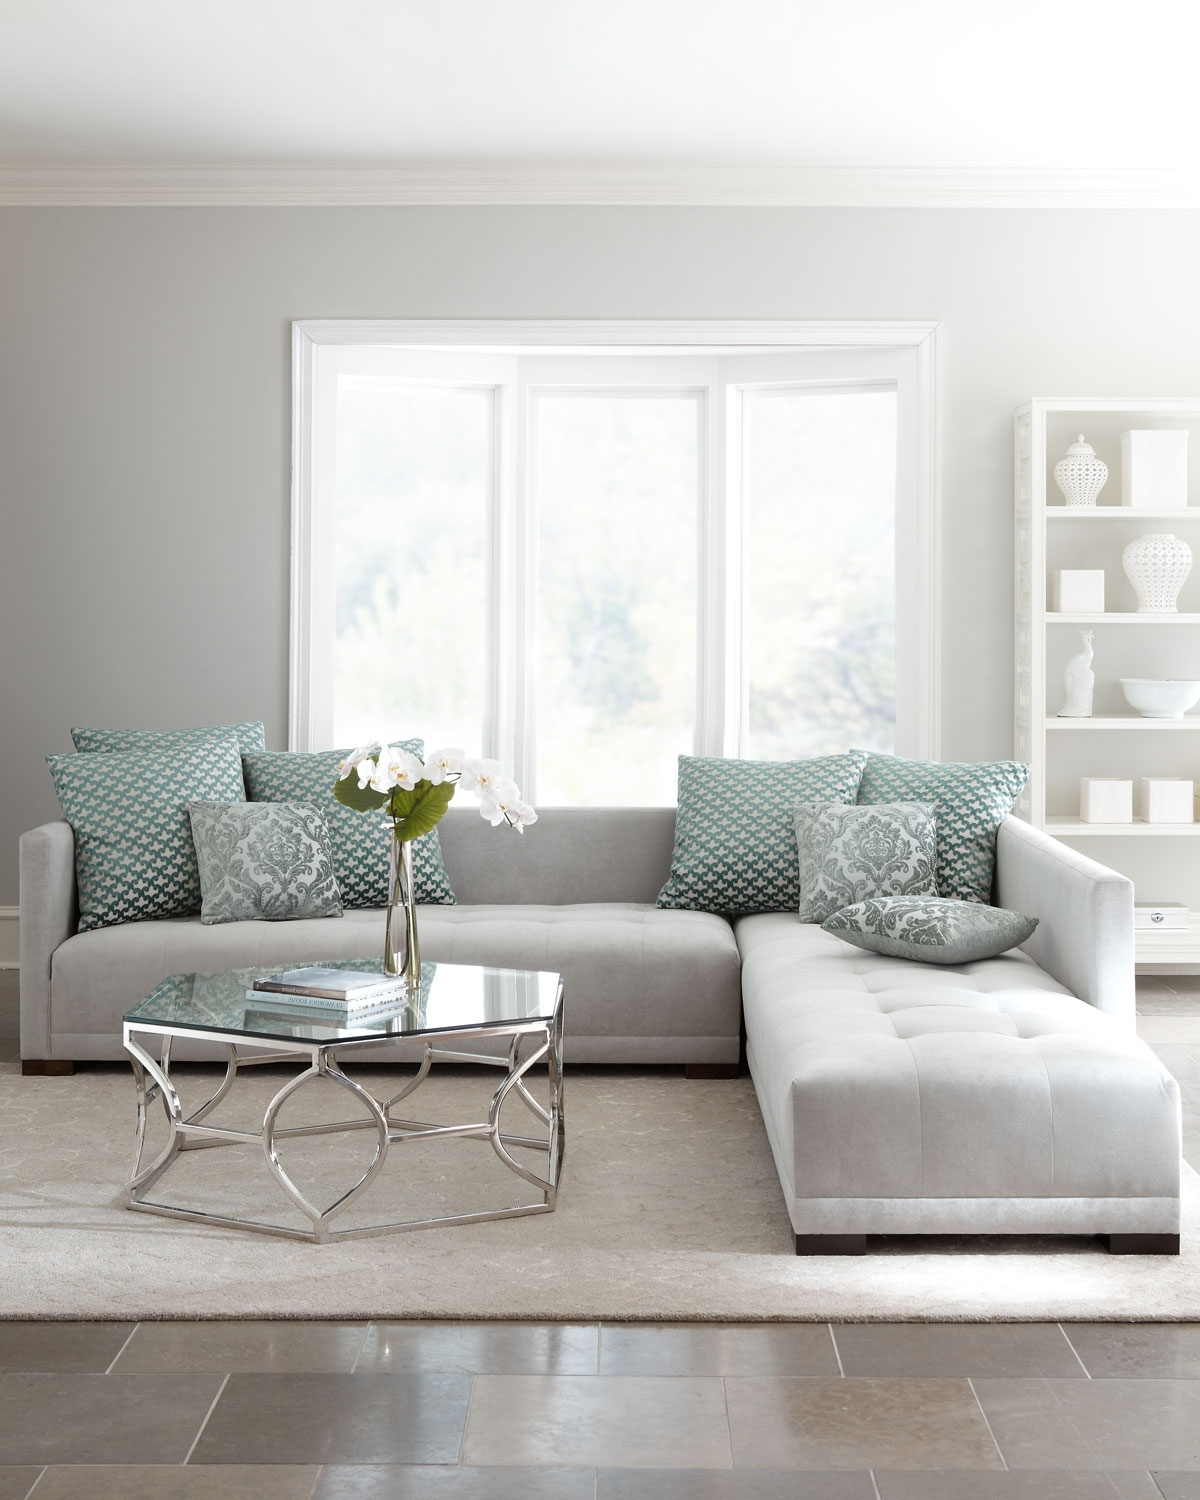 7 Ways To Use Duck Egg Blue To Spruce Up Your Living Room Decor 30+ Living Room Decorating Duck Egg Inspirations